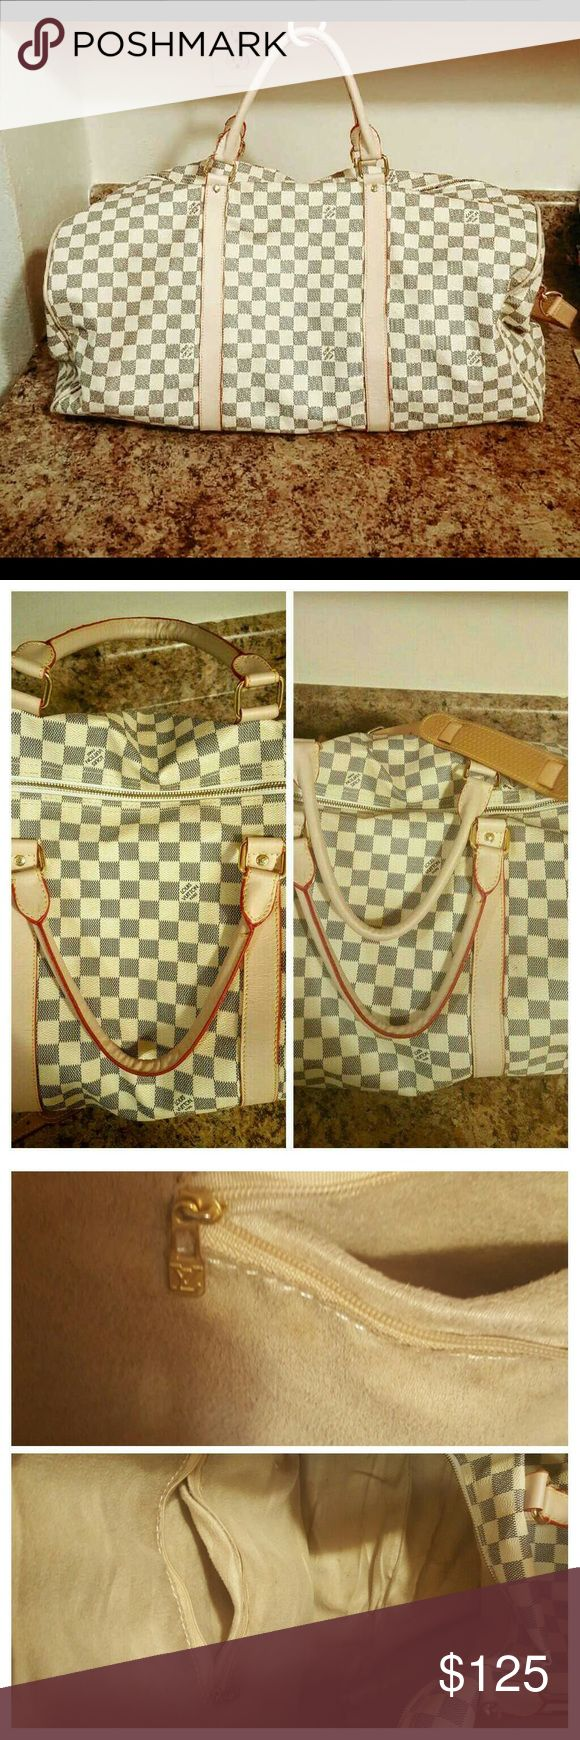 So nice Big Louis bag for Travel It is such a beautiful new white checker Damier Louis Vuitton style bag. It is great for travel to carry all your nice clothes. It is such good price  better than Louis Vuitton price and still so nice you will love it. Along with is included a long strap for comfortable shoulder carry and nice clean new inside. Thank you so much for support! 😊 Louis Vuiiton Bags Travel Bags